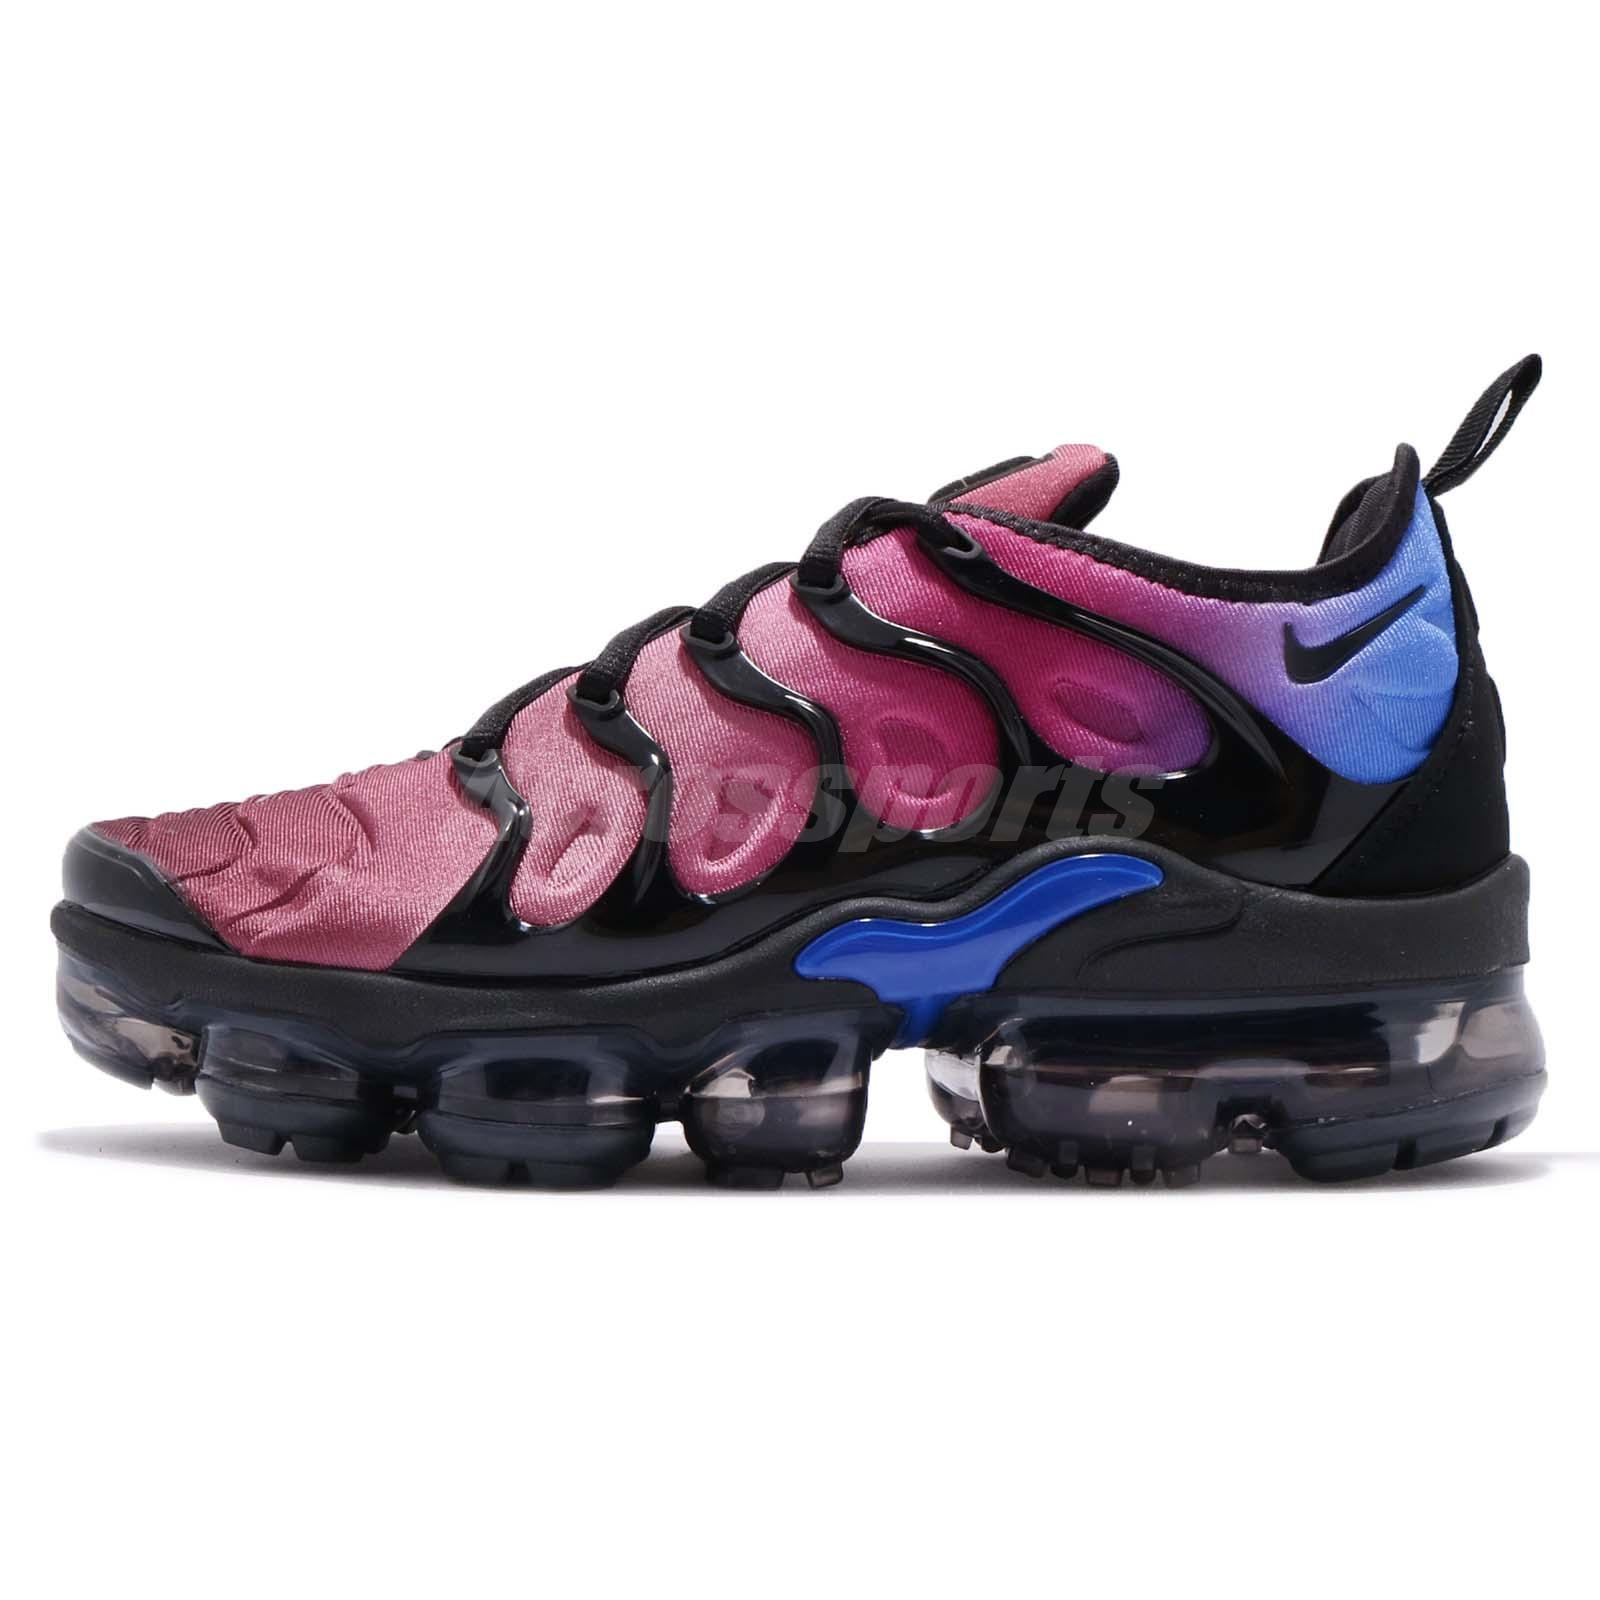 b3c54e821b89 Nike Wmns Air Vapormax Plus Black Team Red Hyper Violet Women Running  AO4550-001